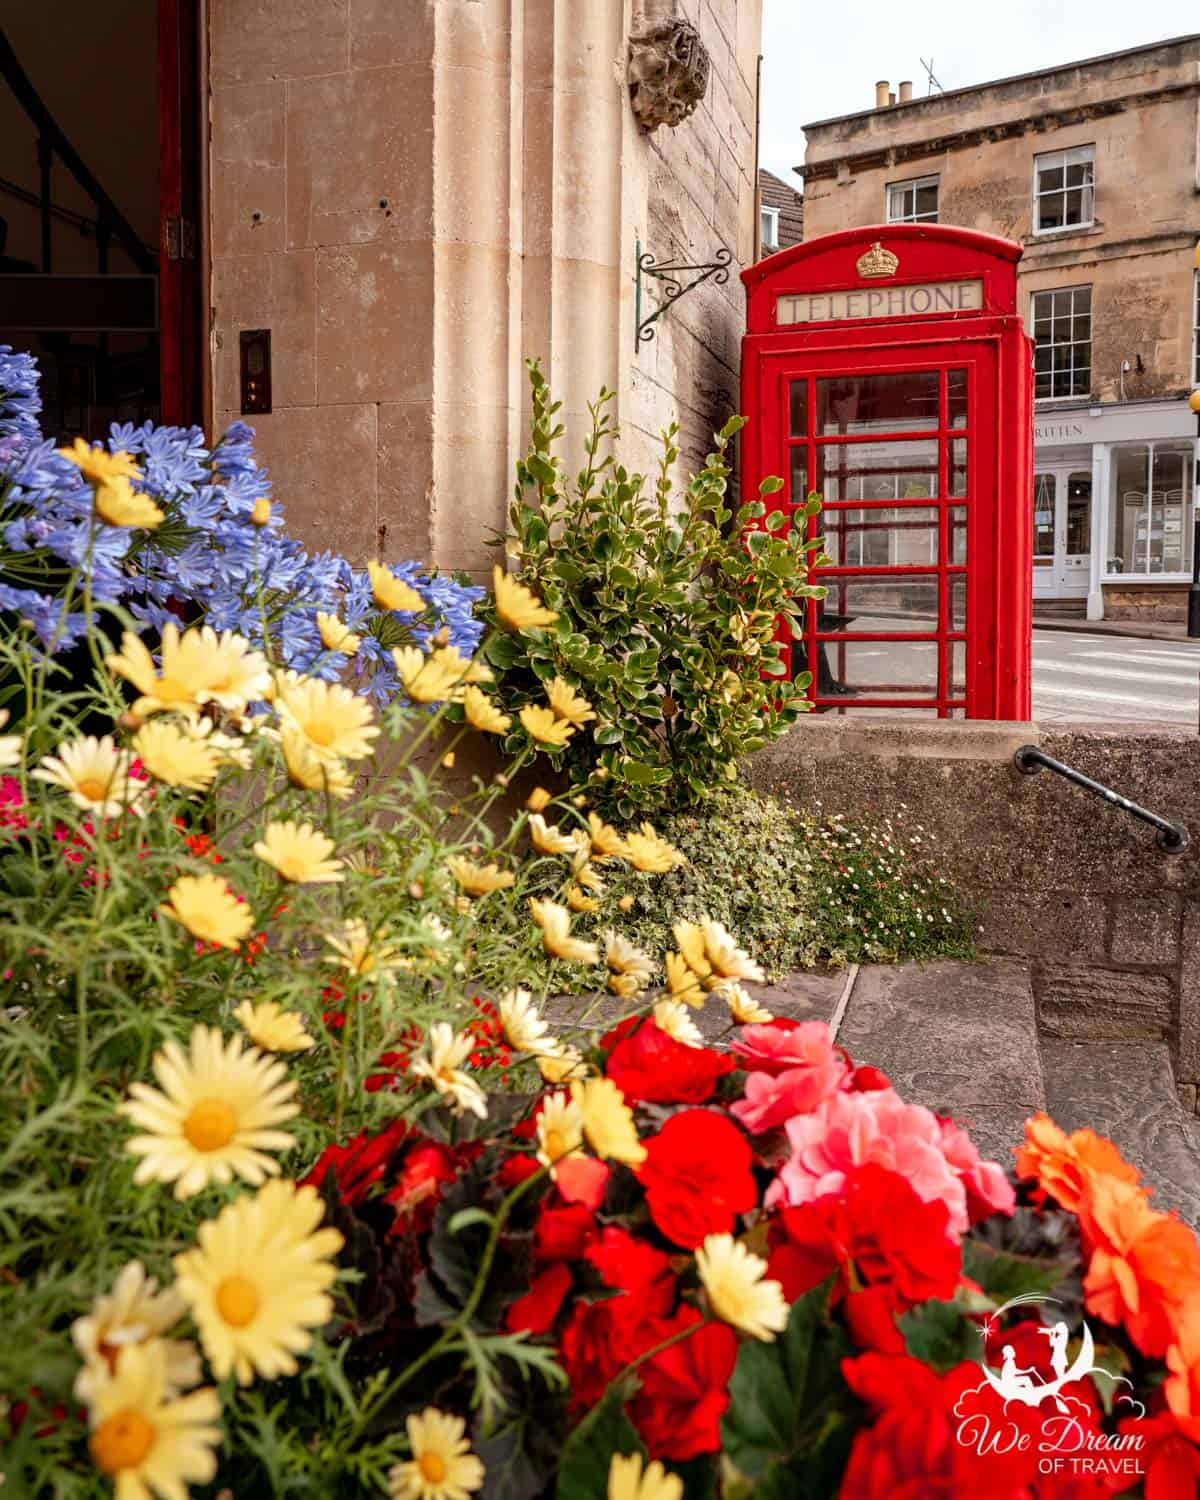 Flowers and a red phone box in Bradford on Avon